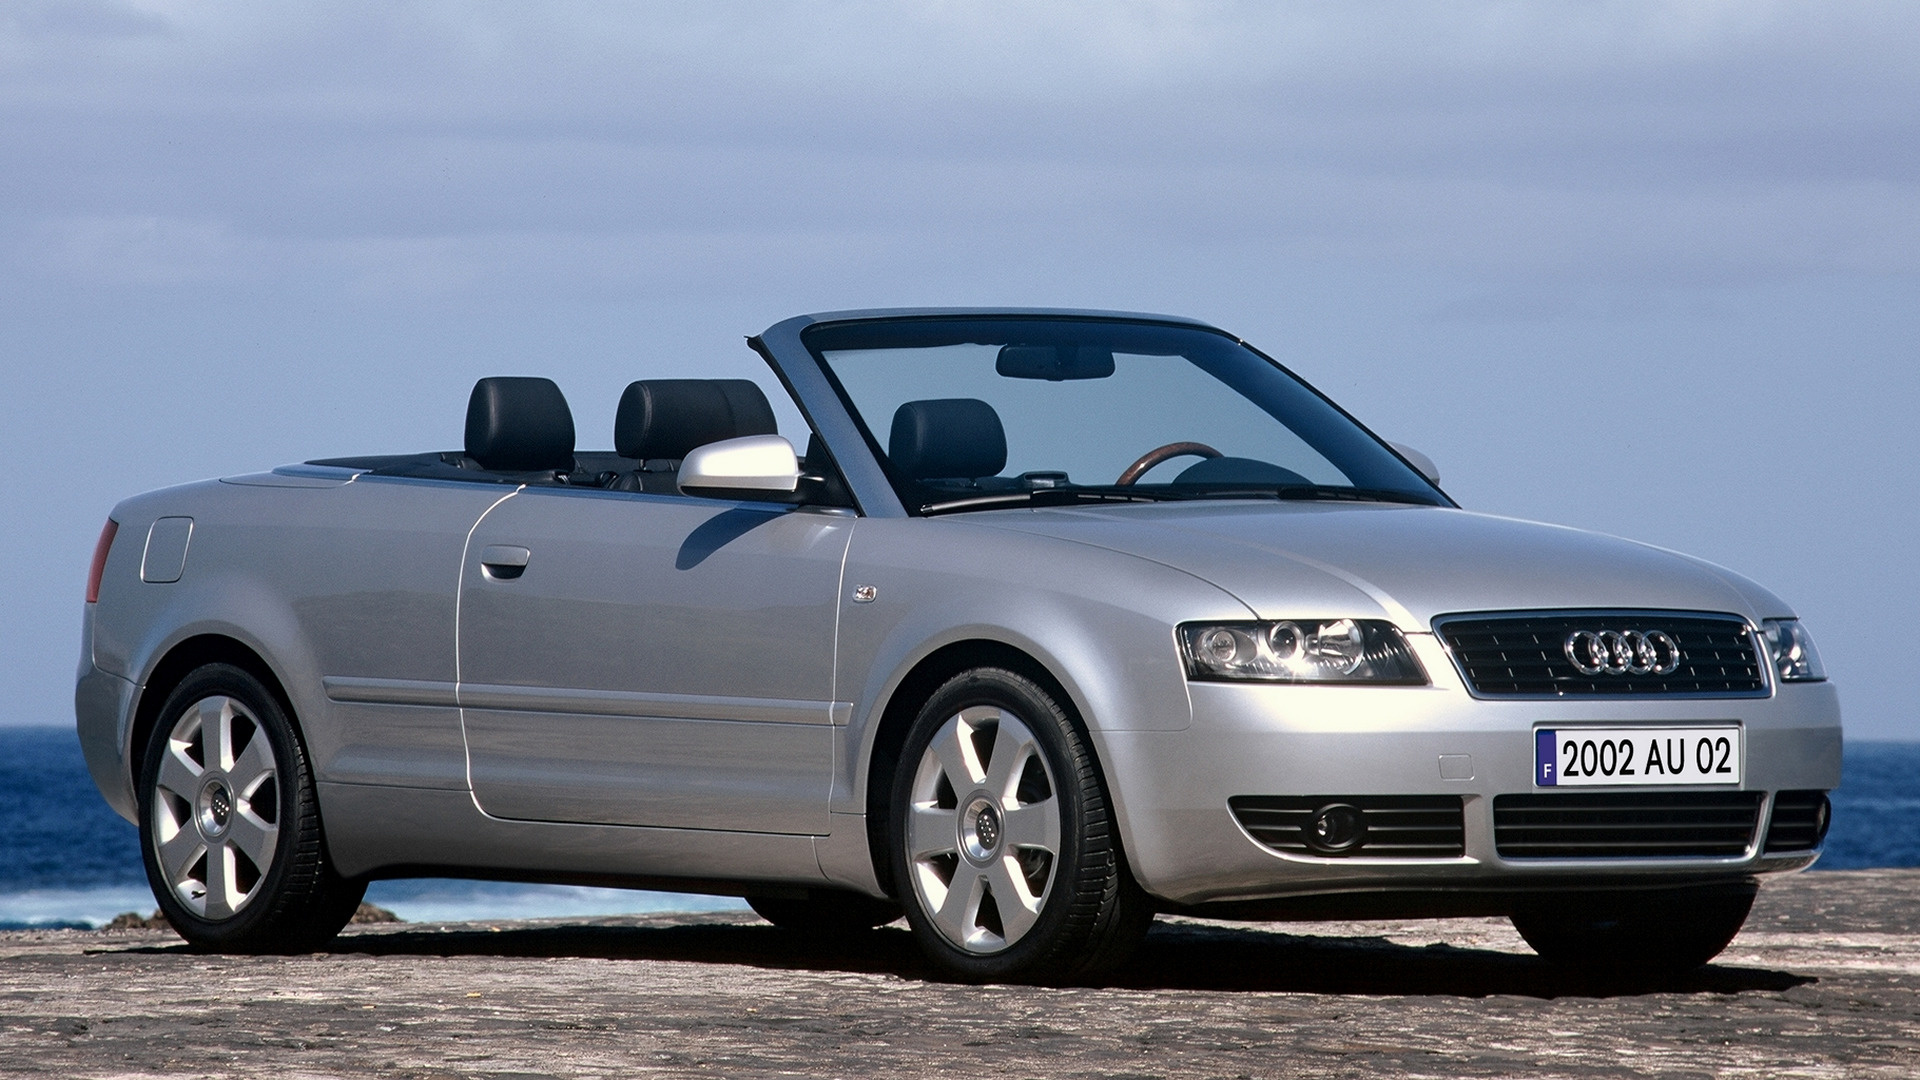 2002 audi a4 cabriolet wallpapers and hd images car pixel. Black Bedroom Furniture Sets. Home Design Ideas